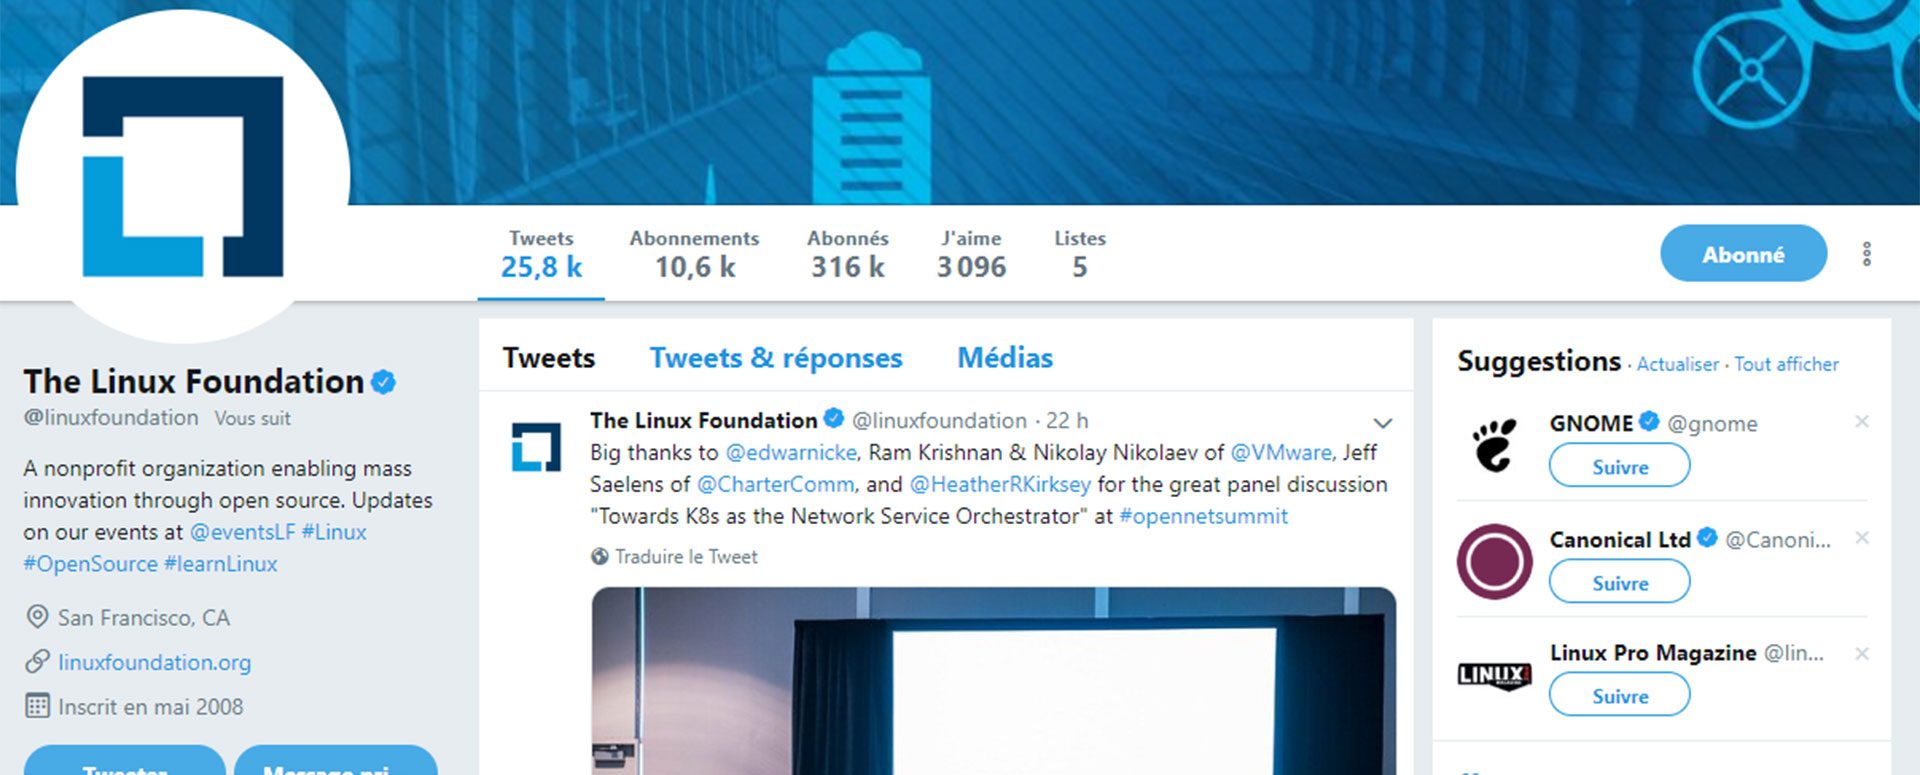 compte Twitter the linux foundation